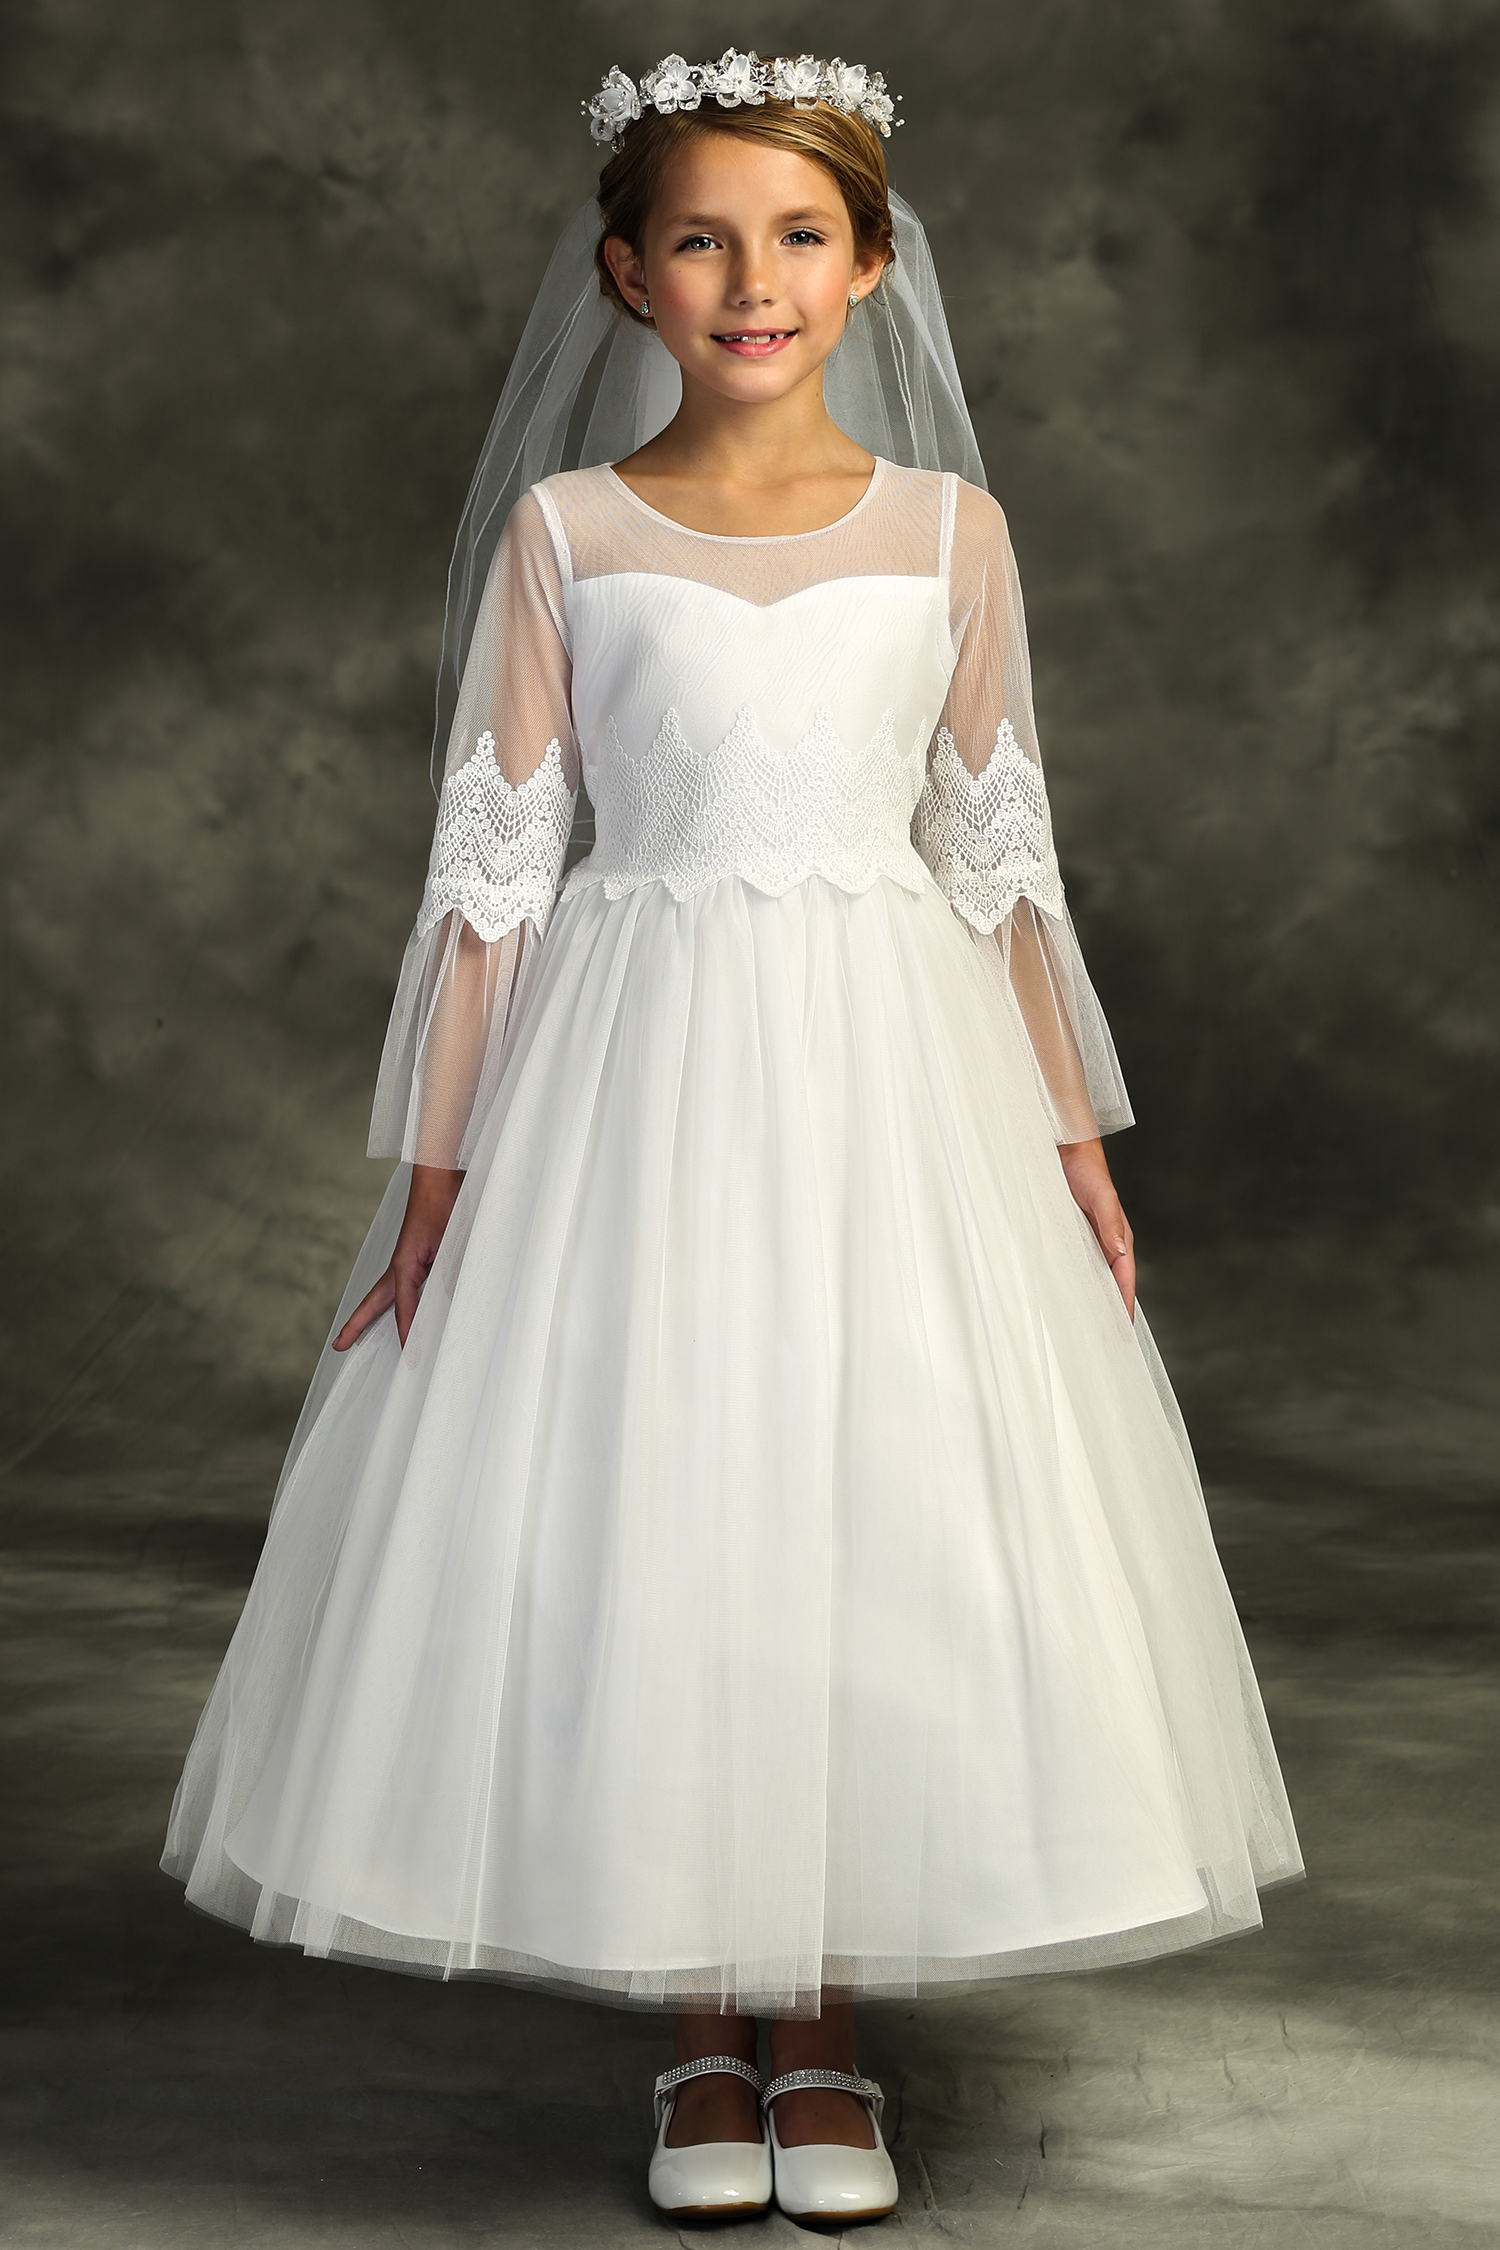 Embroidery Mesh First Communion Dress with Sleeves | Buy